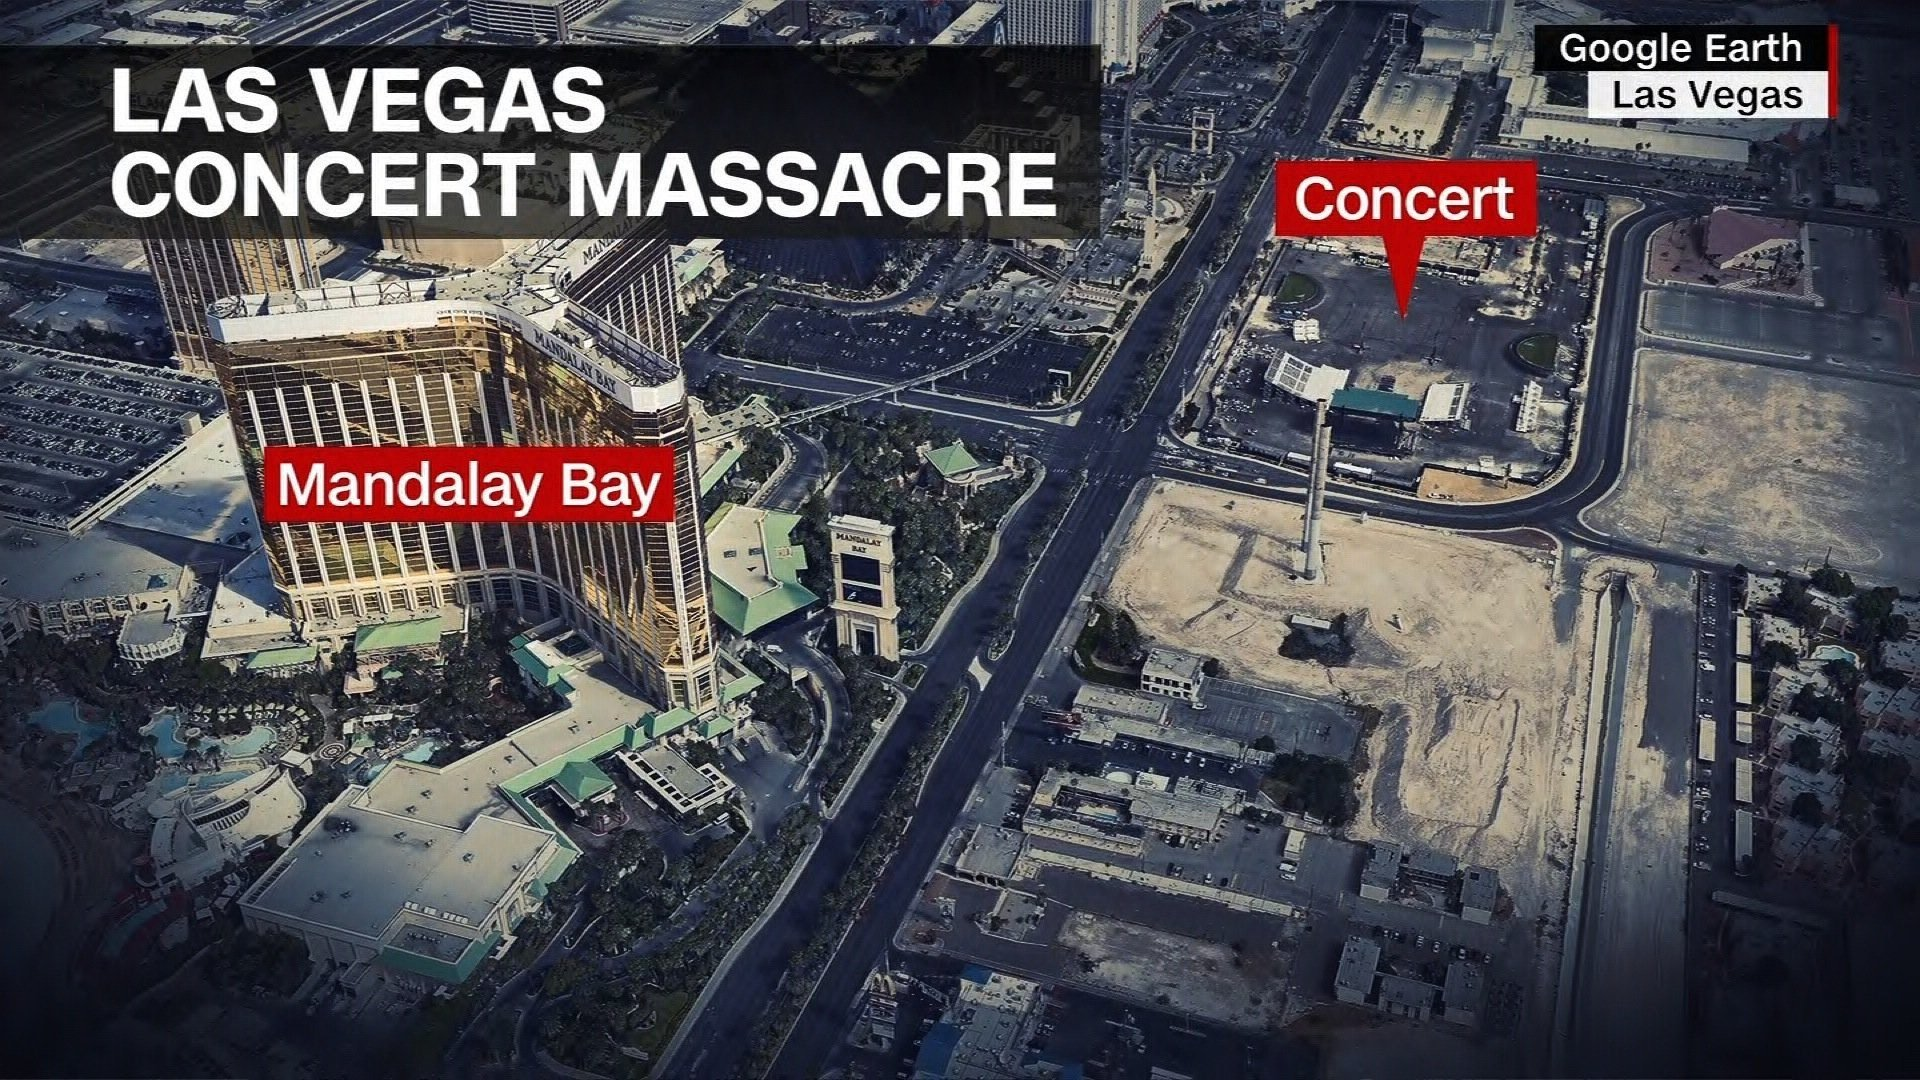 Las Vegas Shooter Booked Hotel Rooms Near Lollapalooza: Report